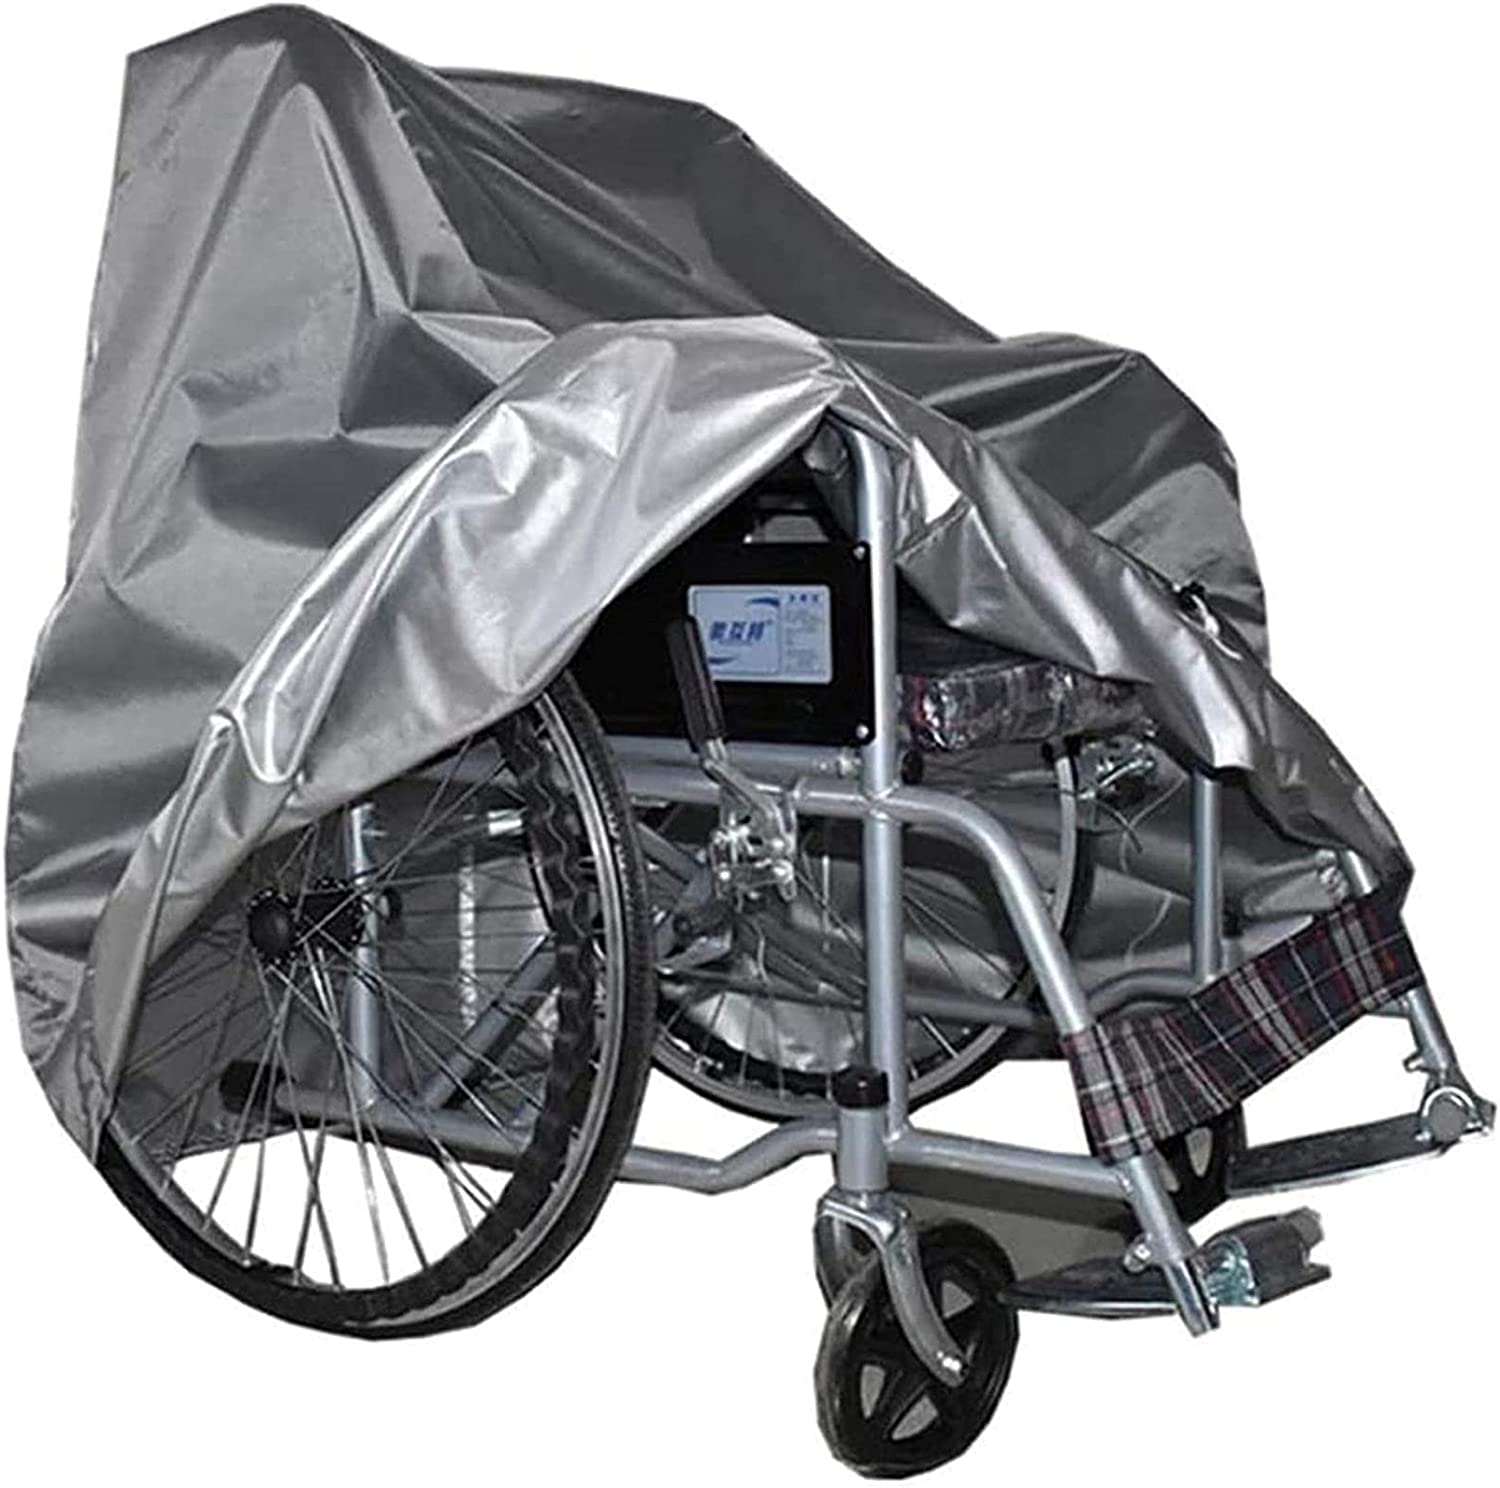 WHCQ Furniture Wheelchair Fort Worth Mall Covers Protection Cover G Super popular specialty store